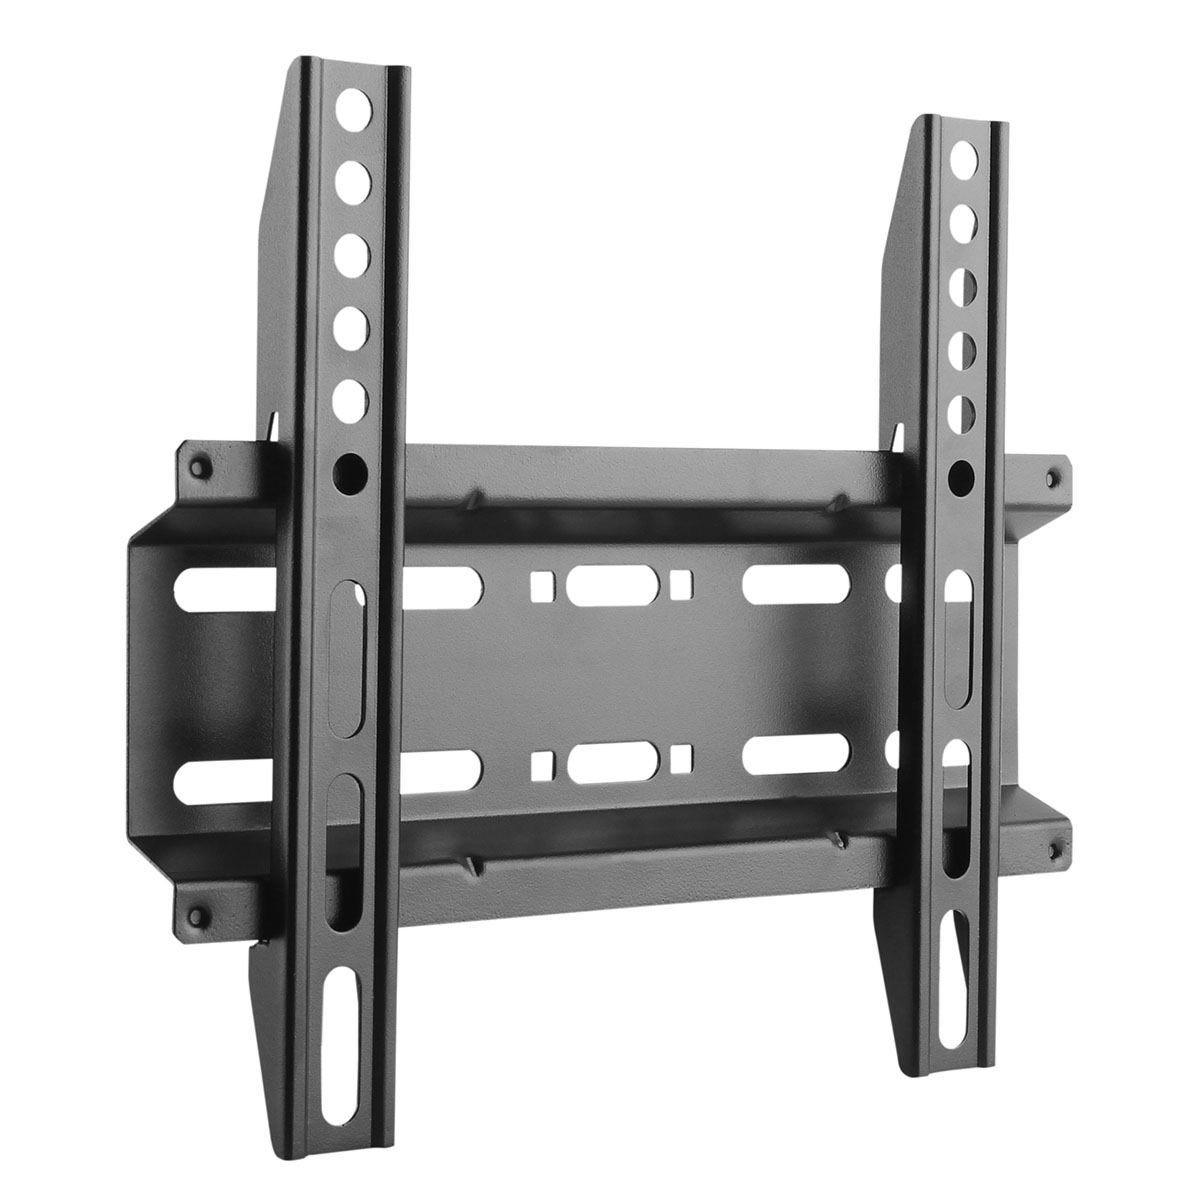 SBOX Fixed Wall Mount PLB-2522F for 23-43inch Flat Panel TV - Black